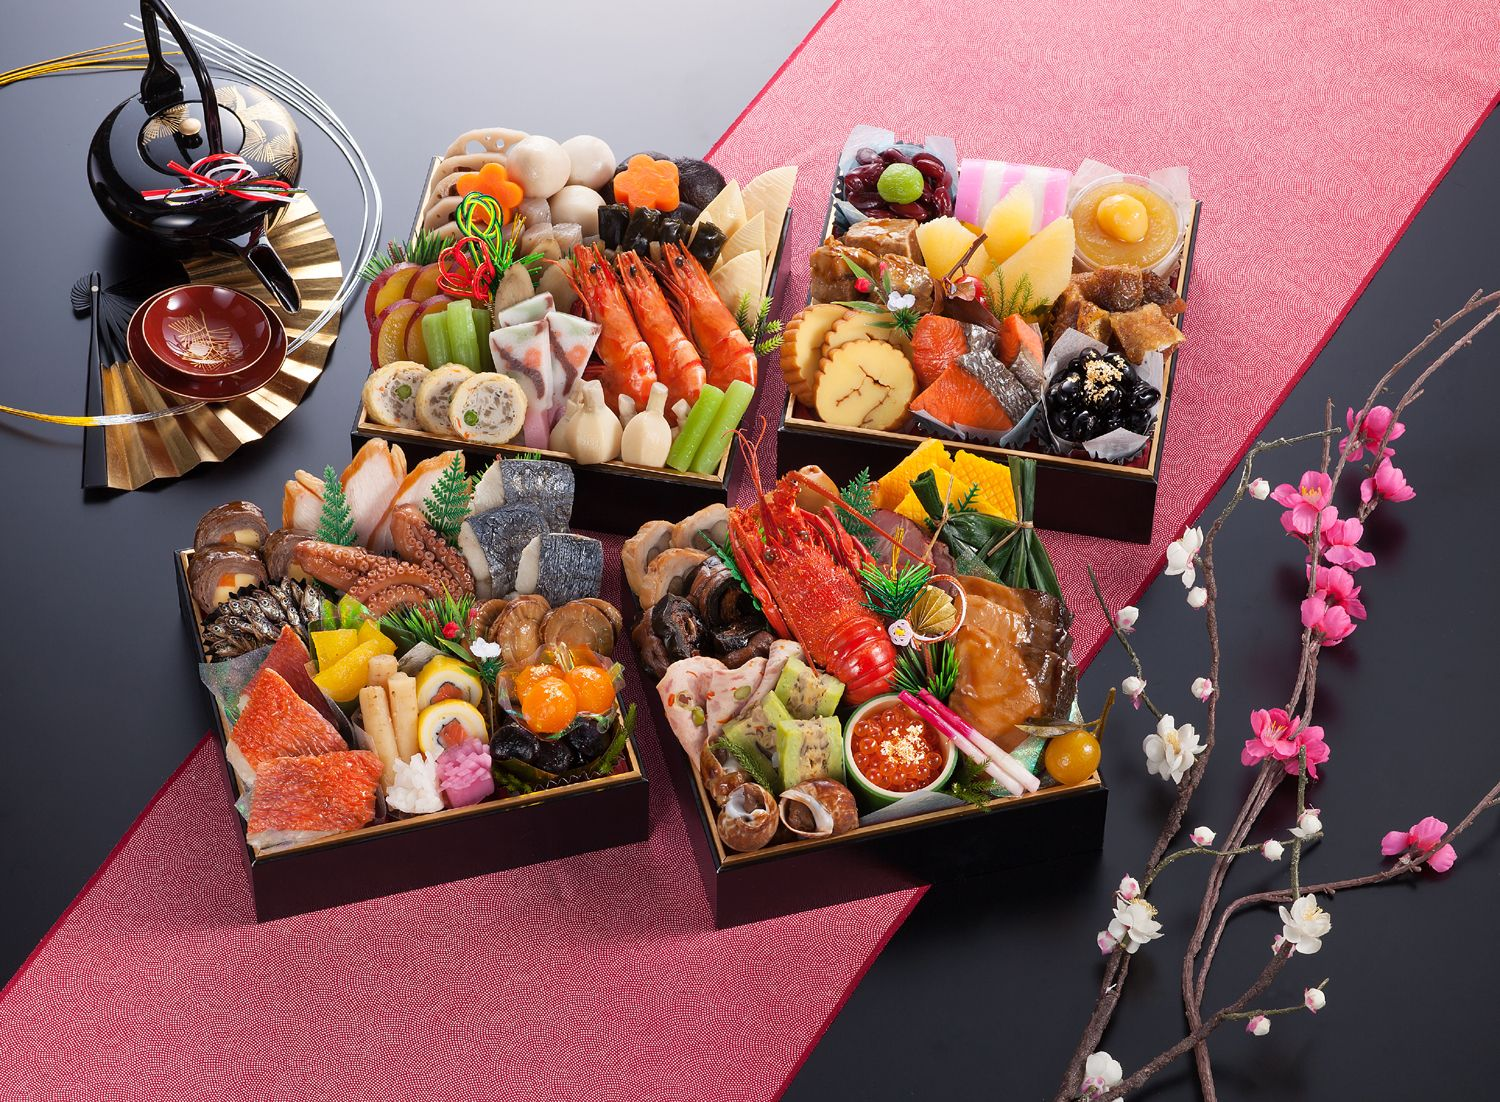 Japan's Most Important Meal of the Year New year's food